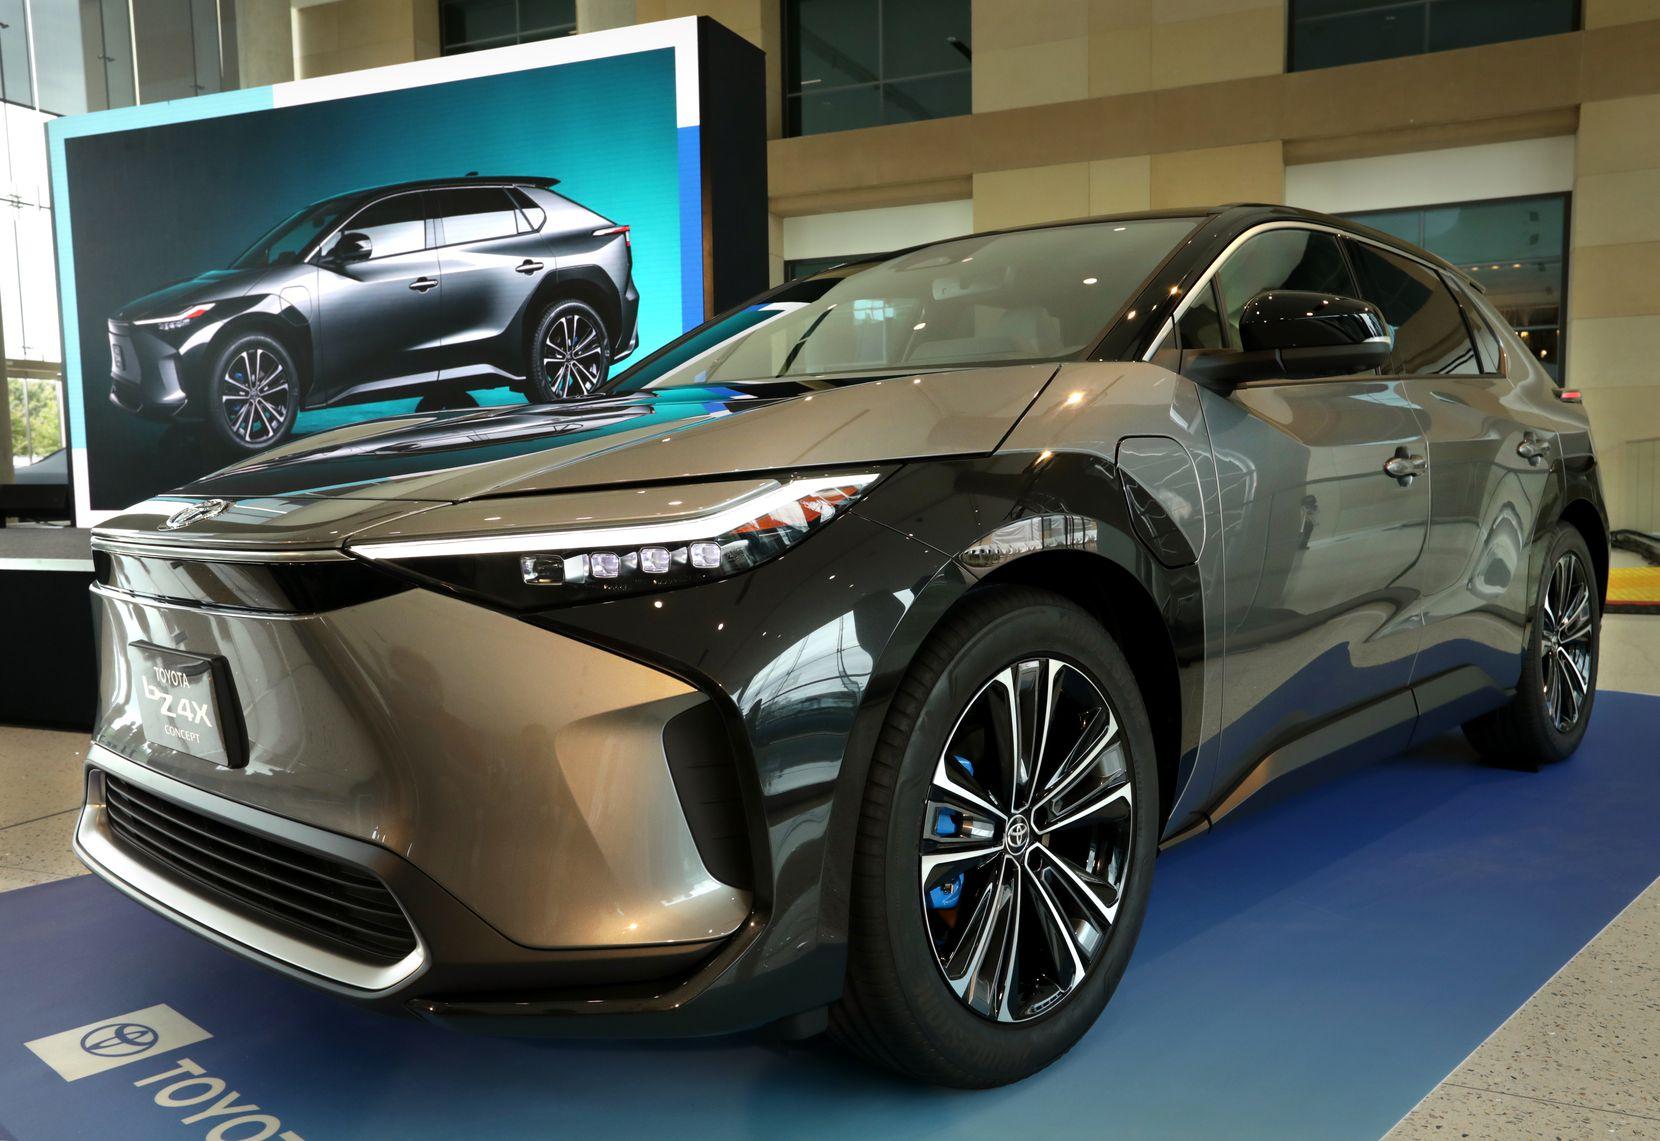 The new Toyota BZ4X concept vehicle photographed during a special press event at Toyota headquarters in Plano on Wednesday.